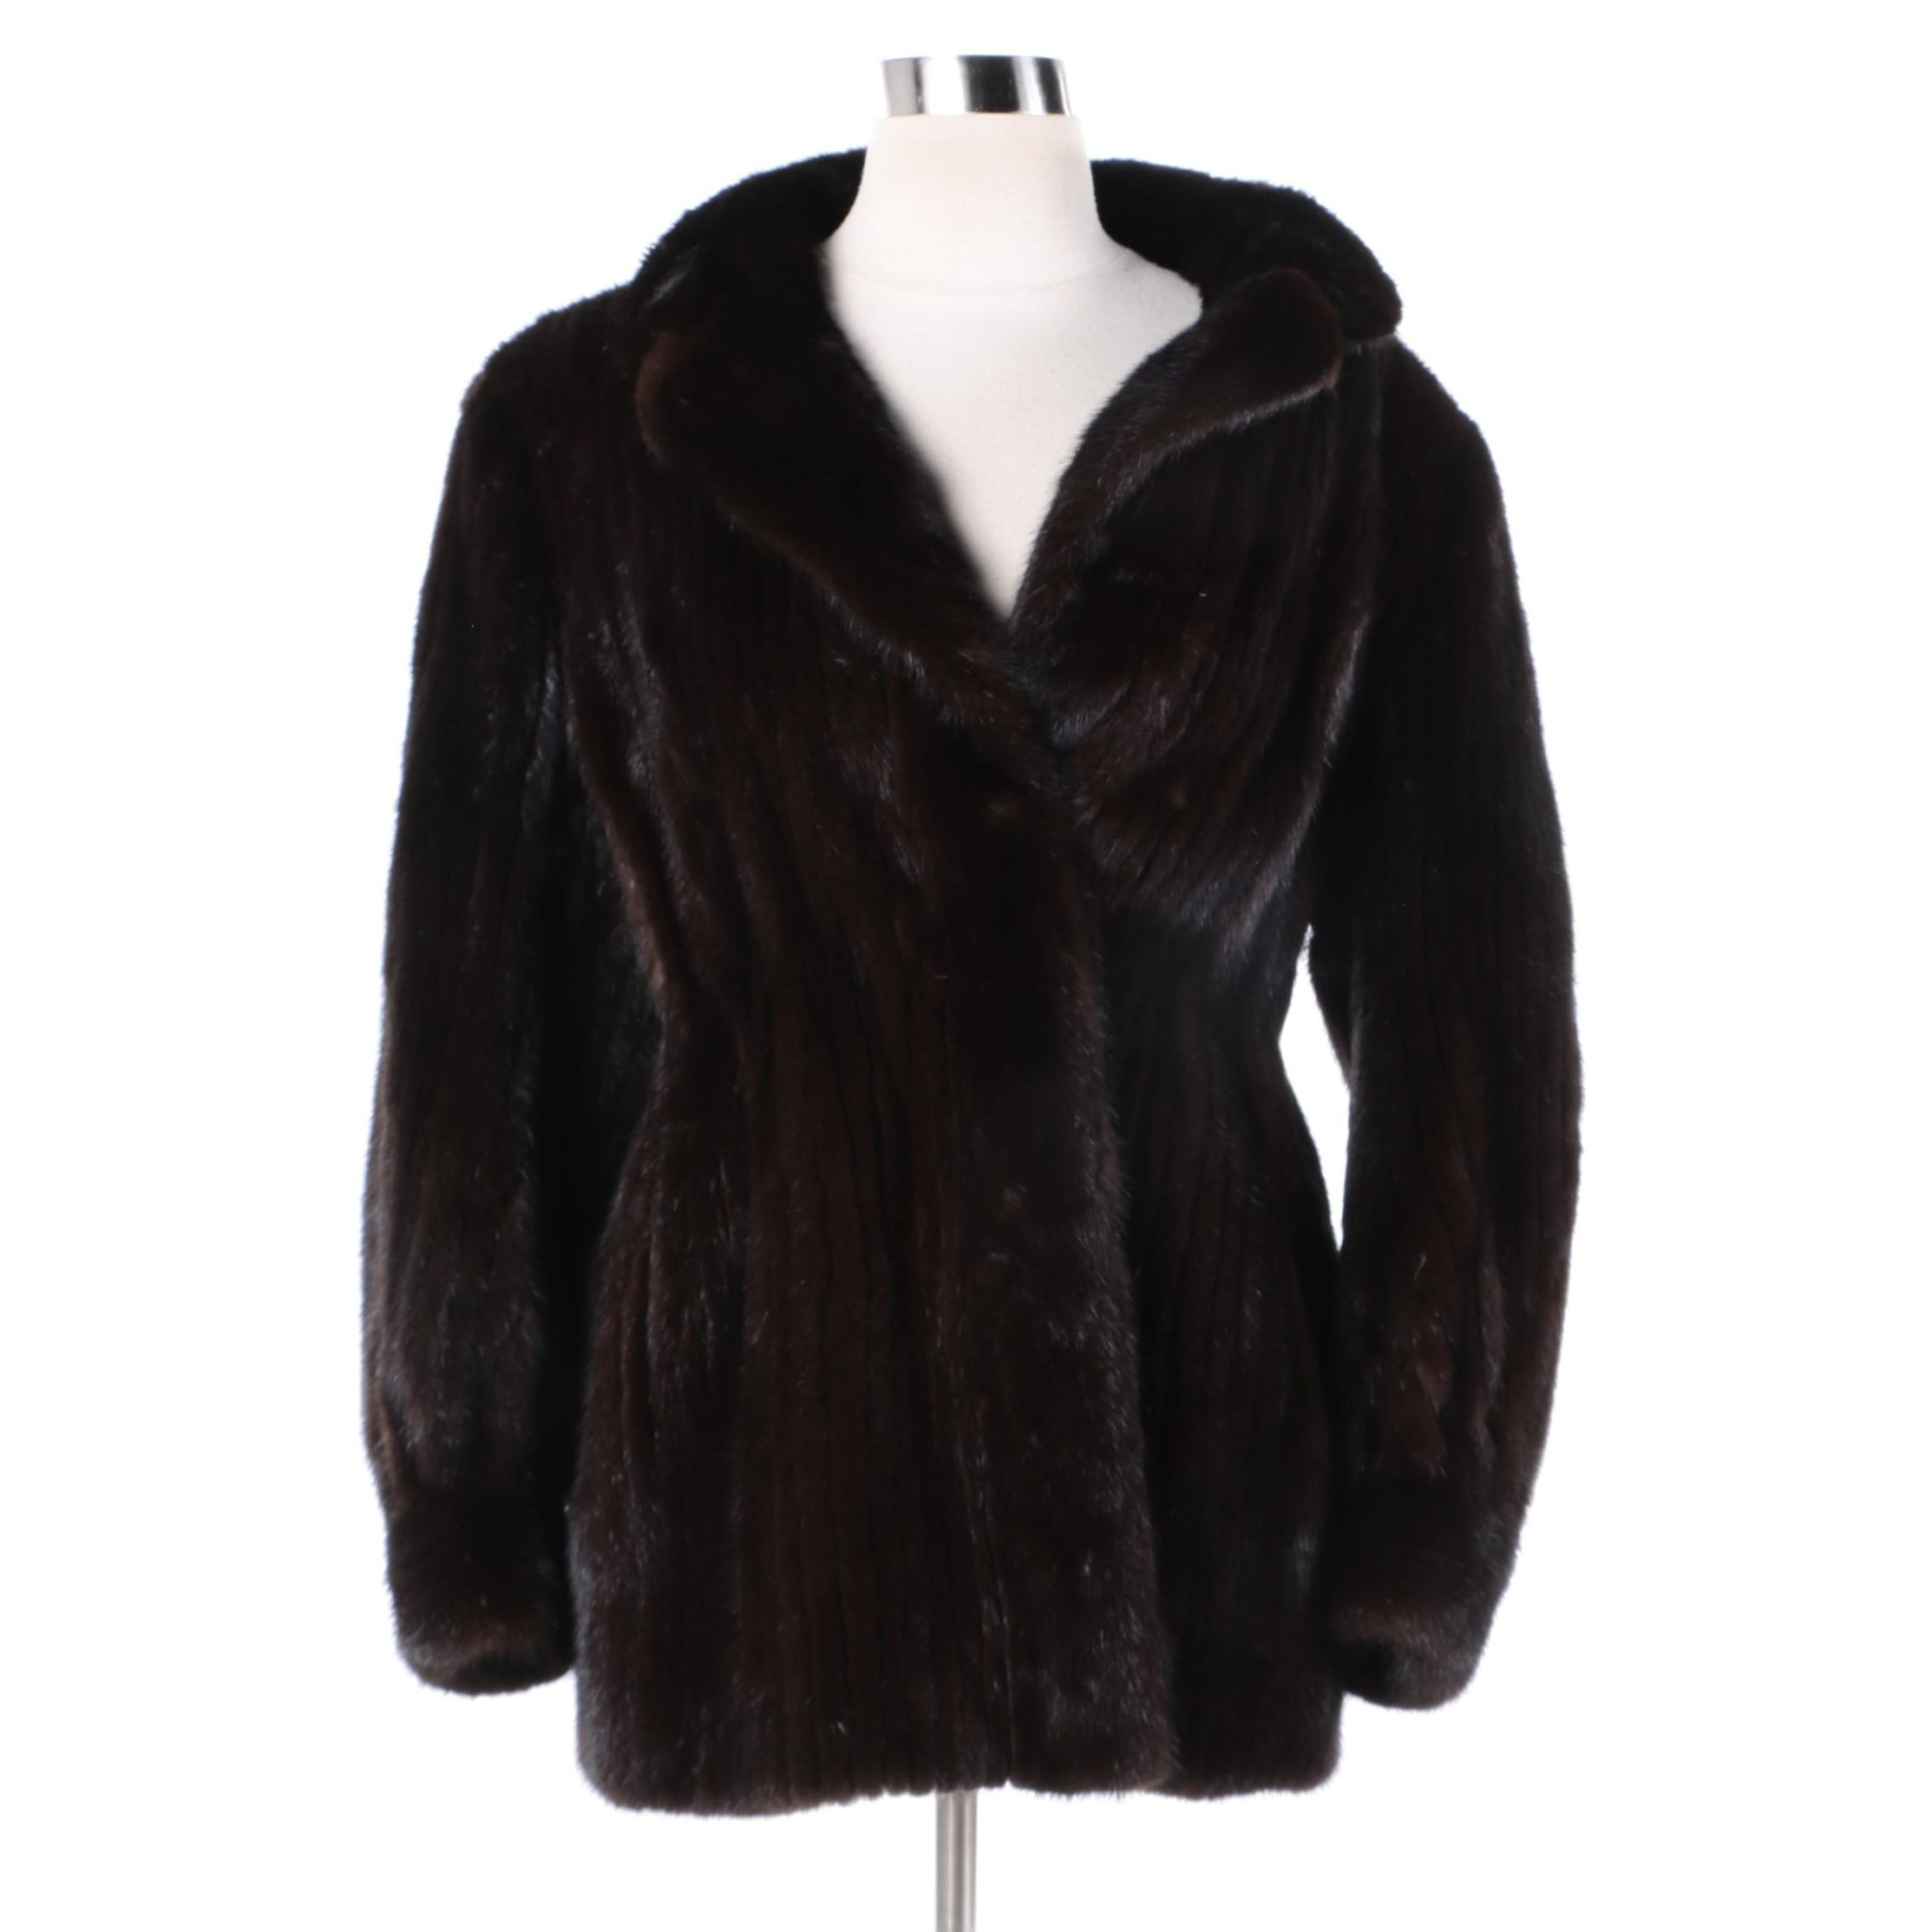 Women's Zinman Furs Mink Fur Coat